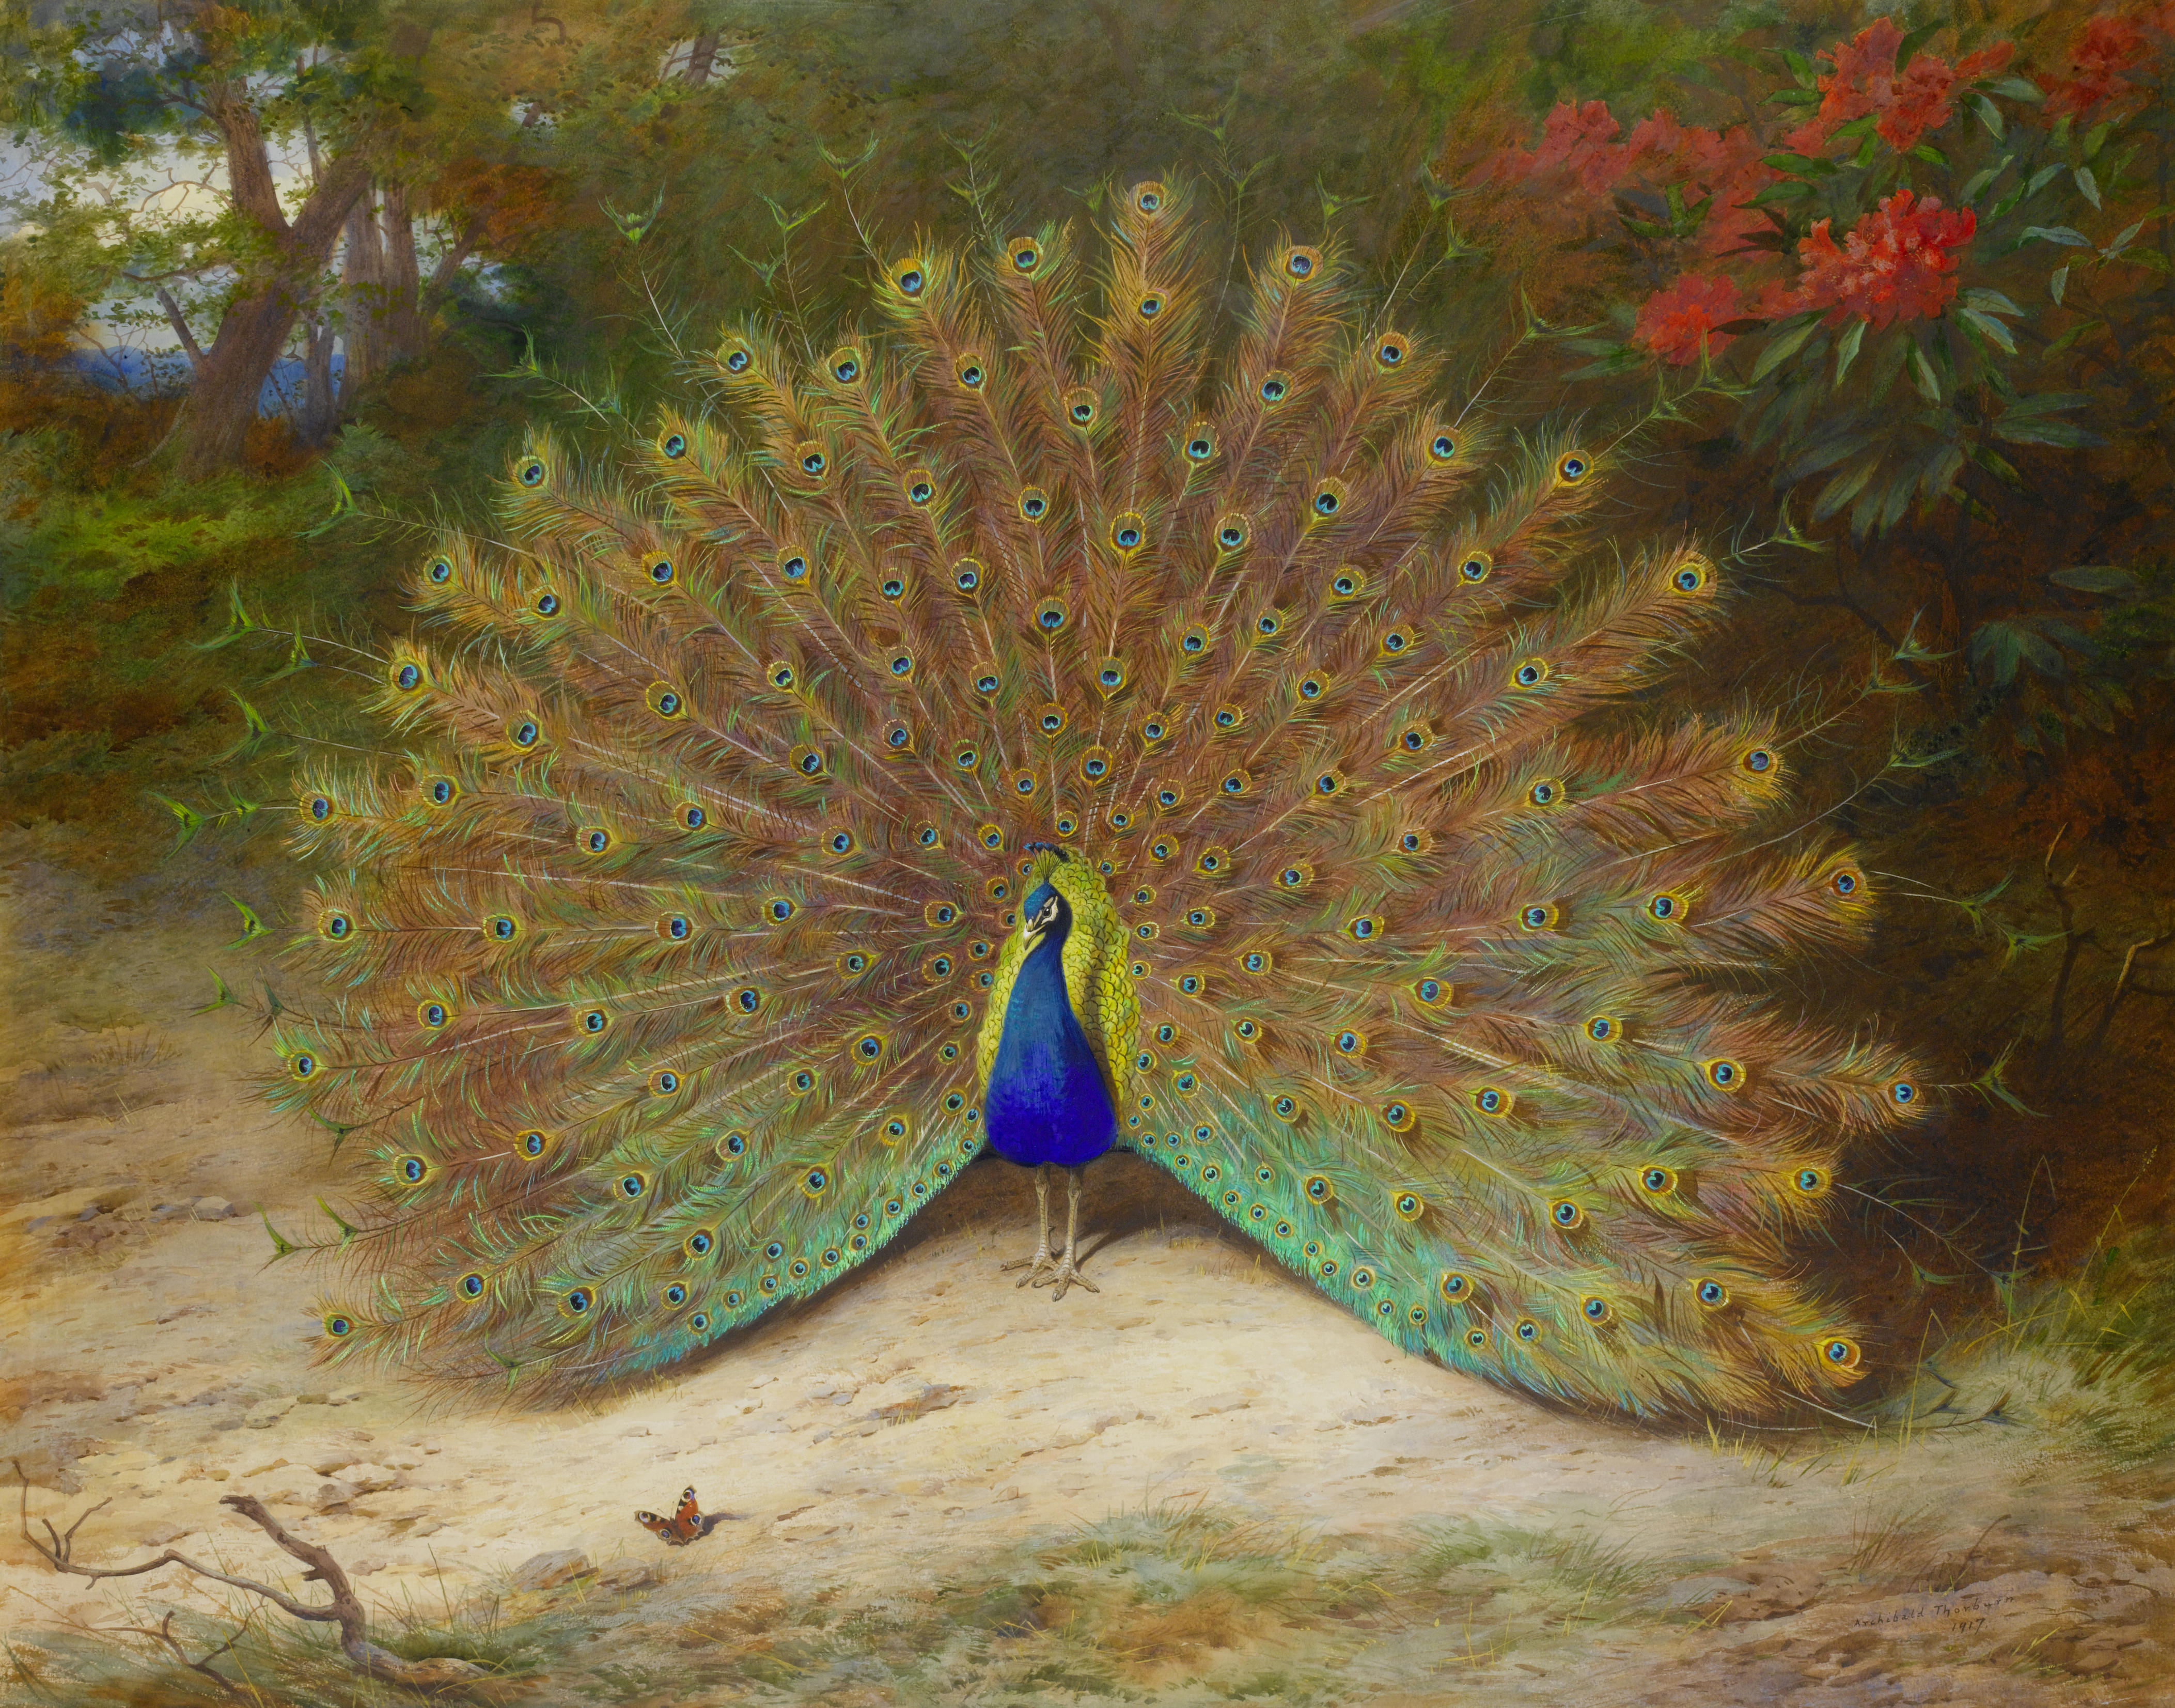 the peacock in myth